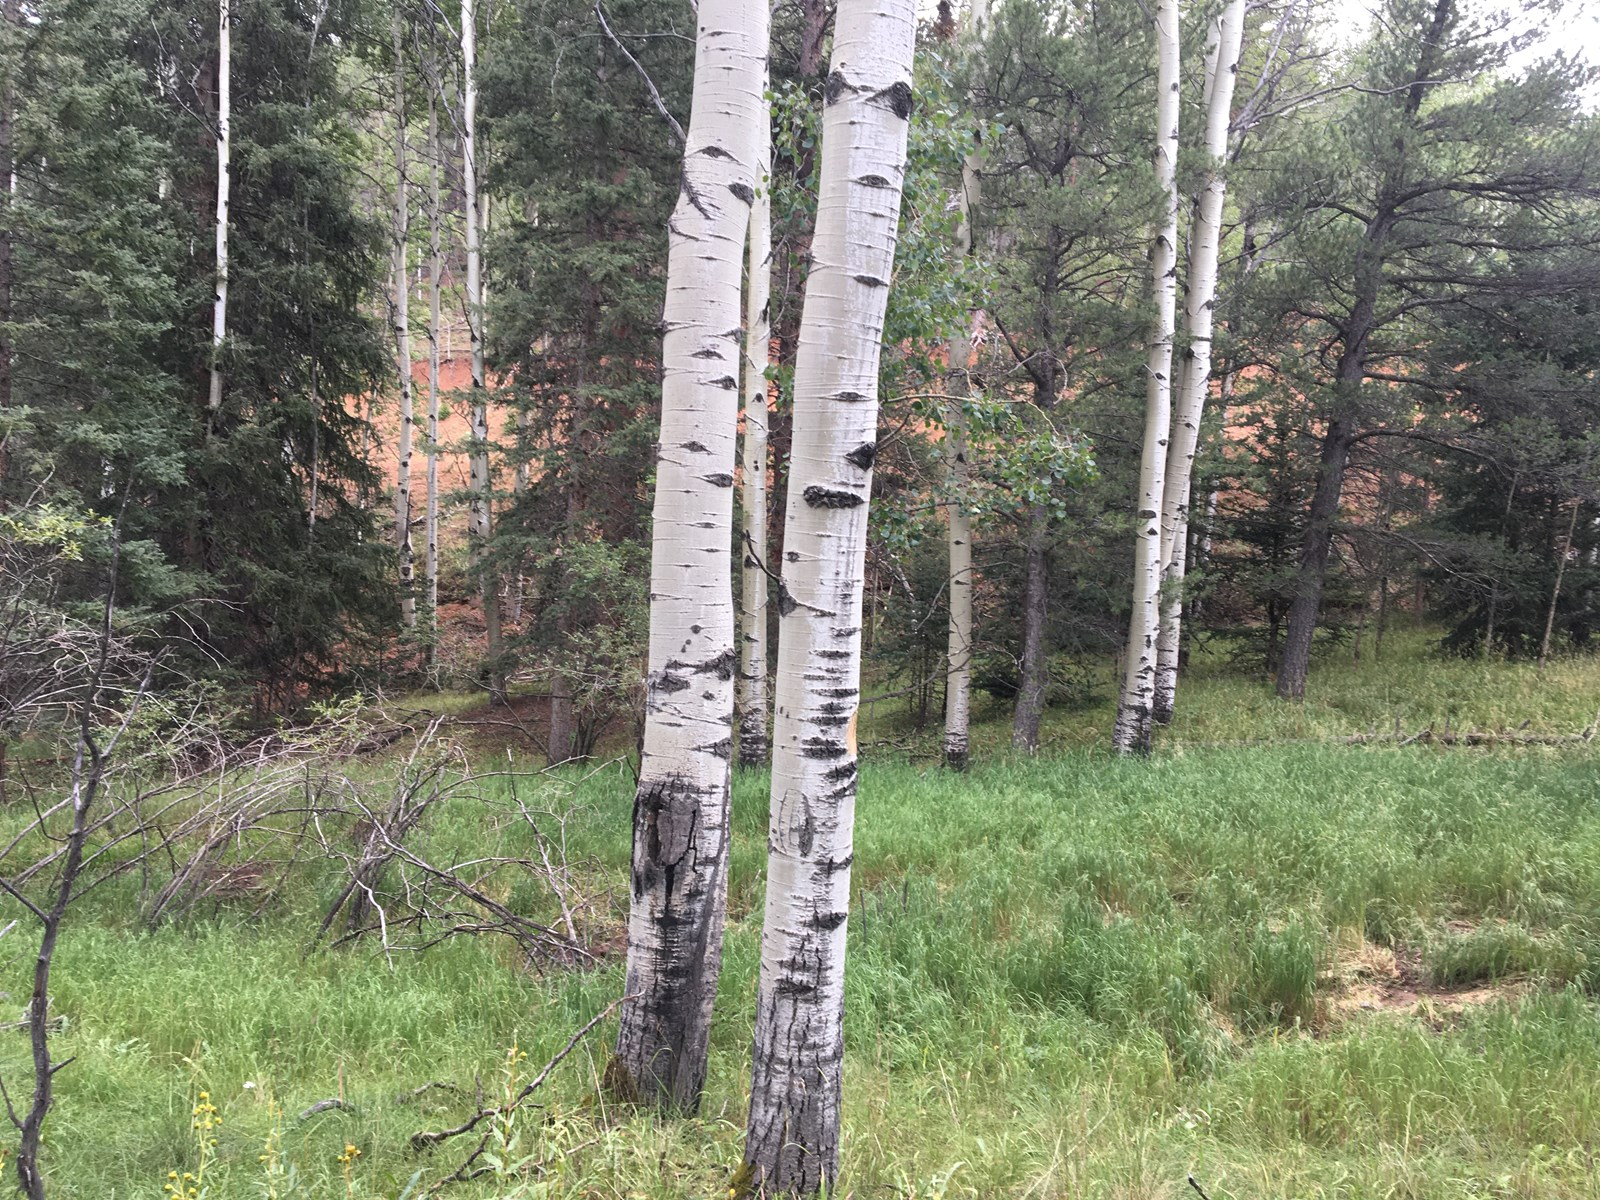 Colorado mountain land for sale, aspen and pine trees